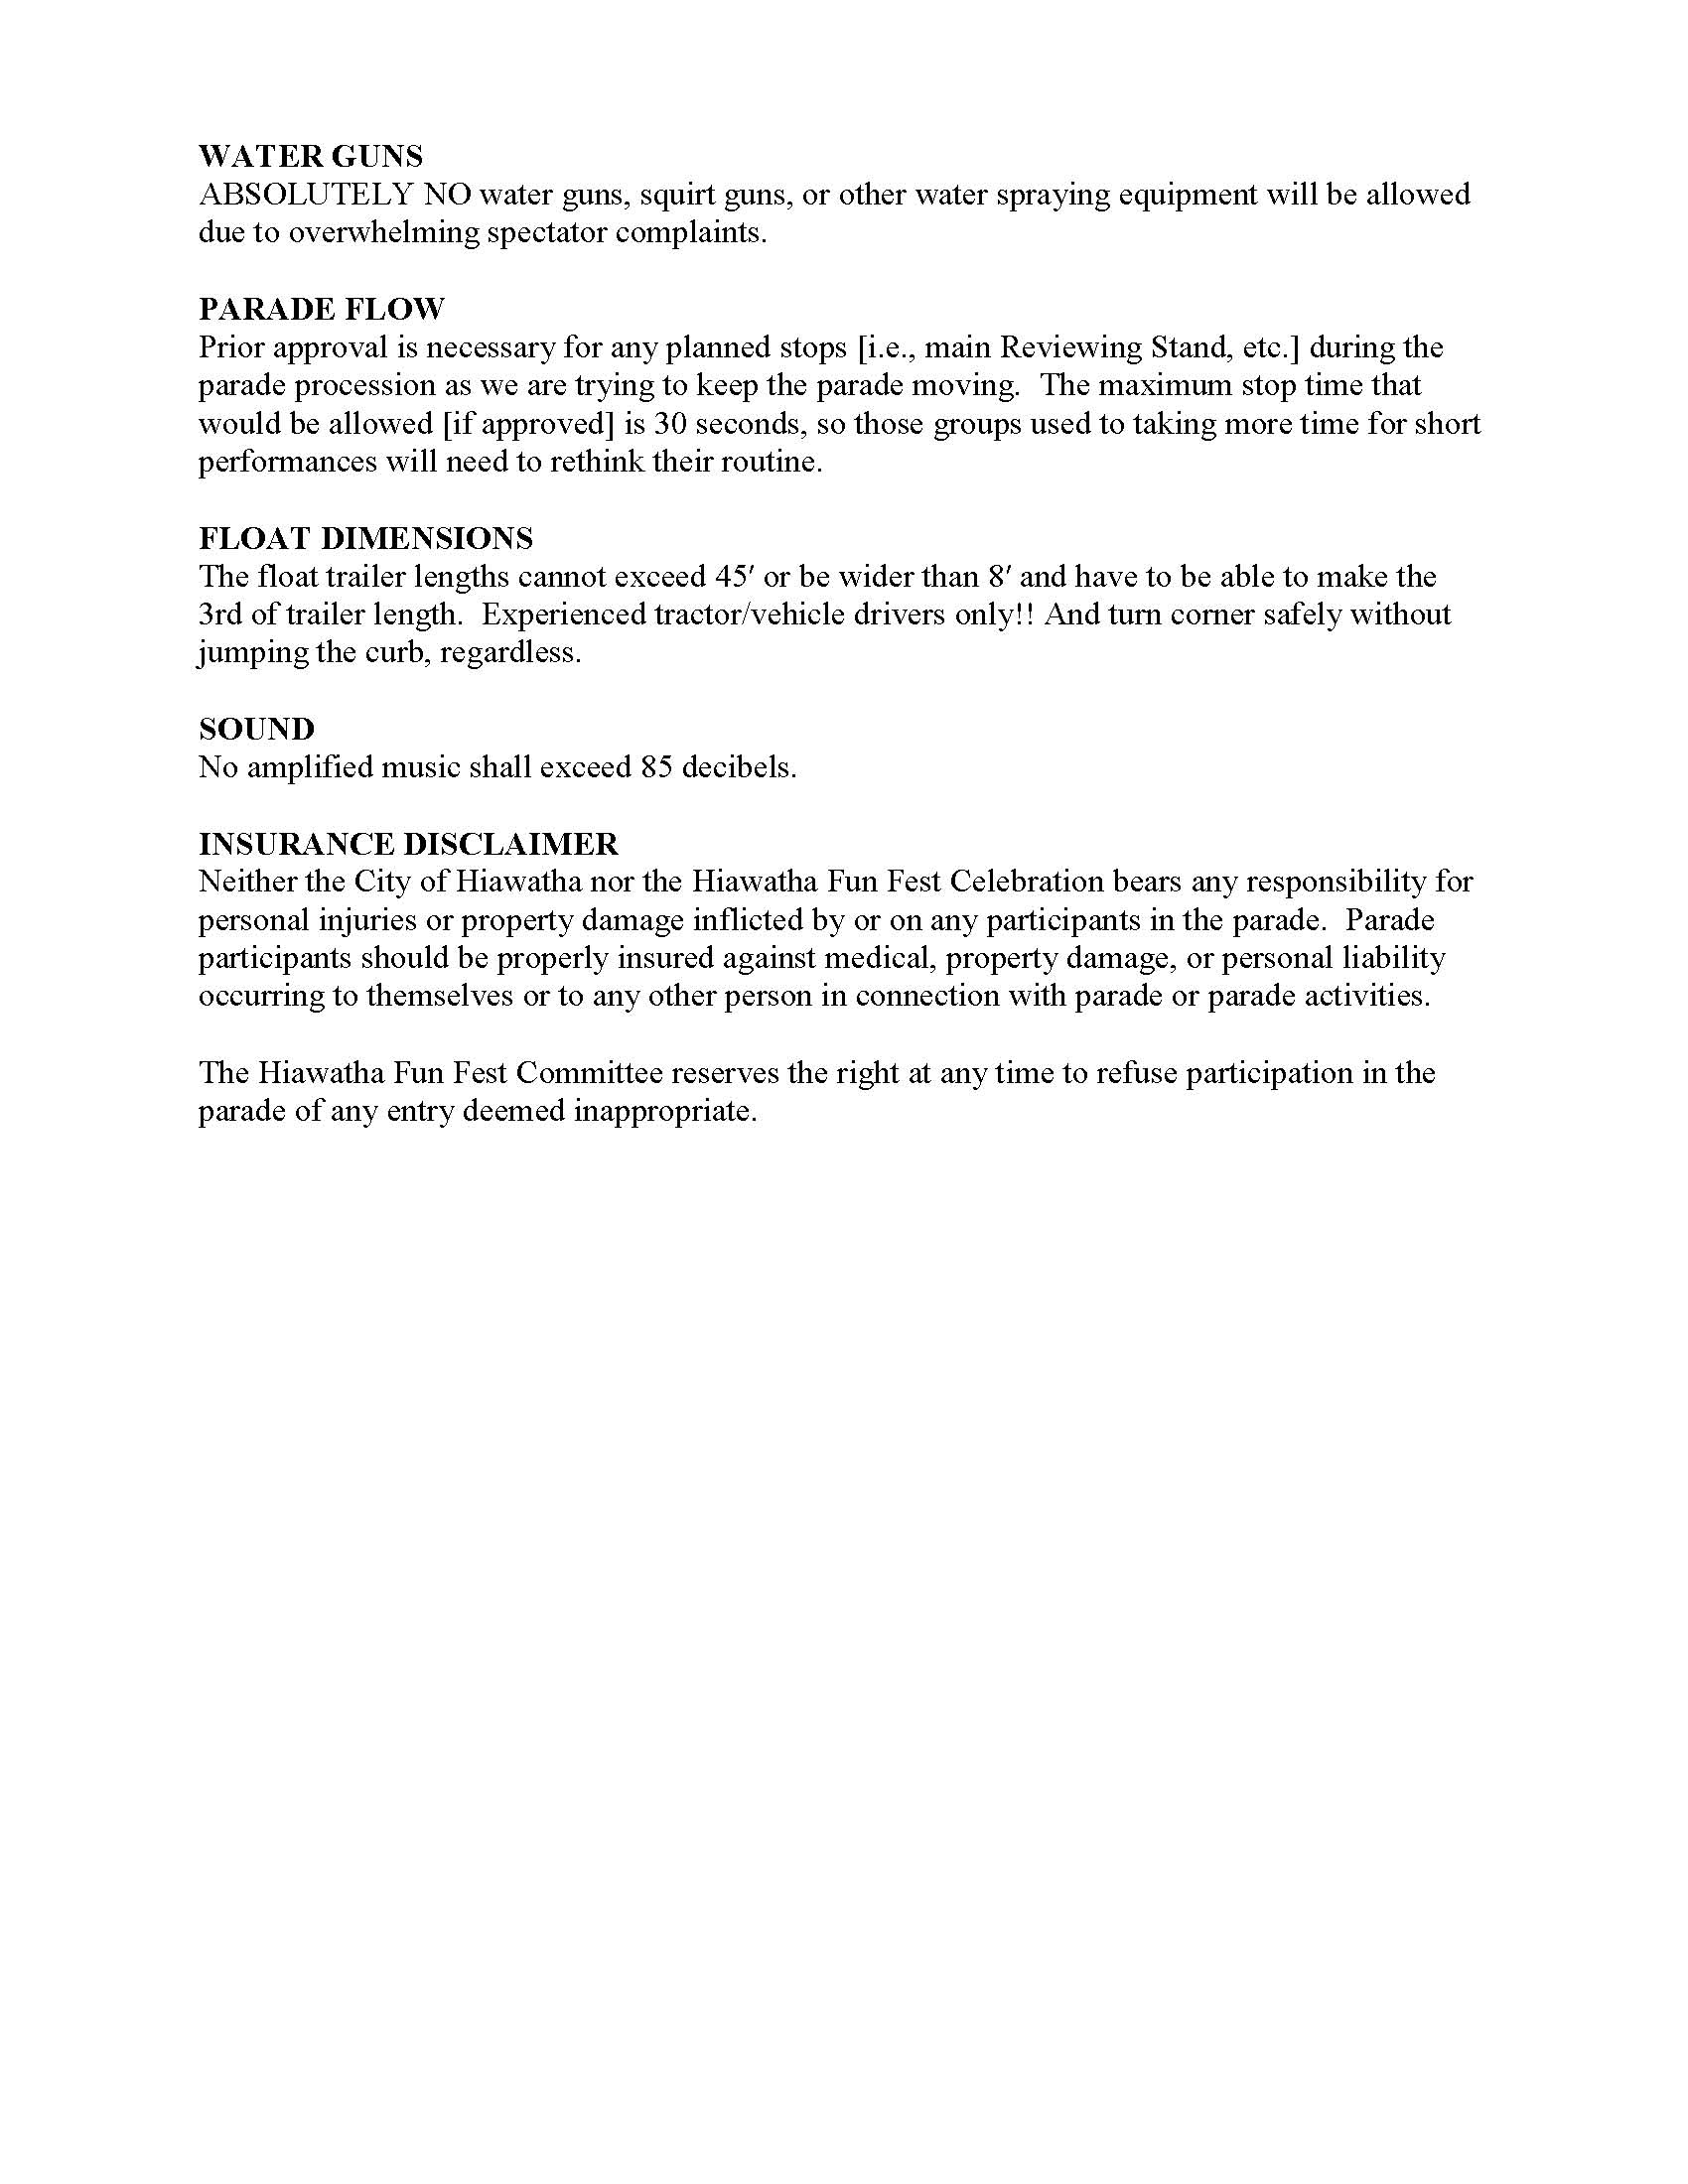 Hiawatha Fun Fest Parade Guidelines Page two